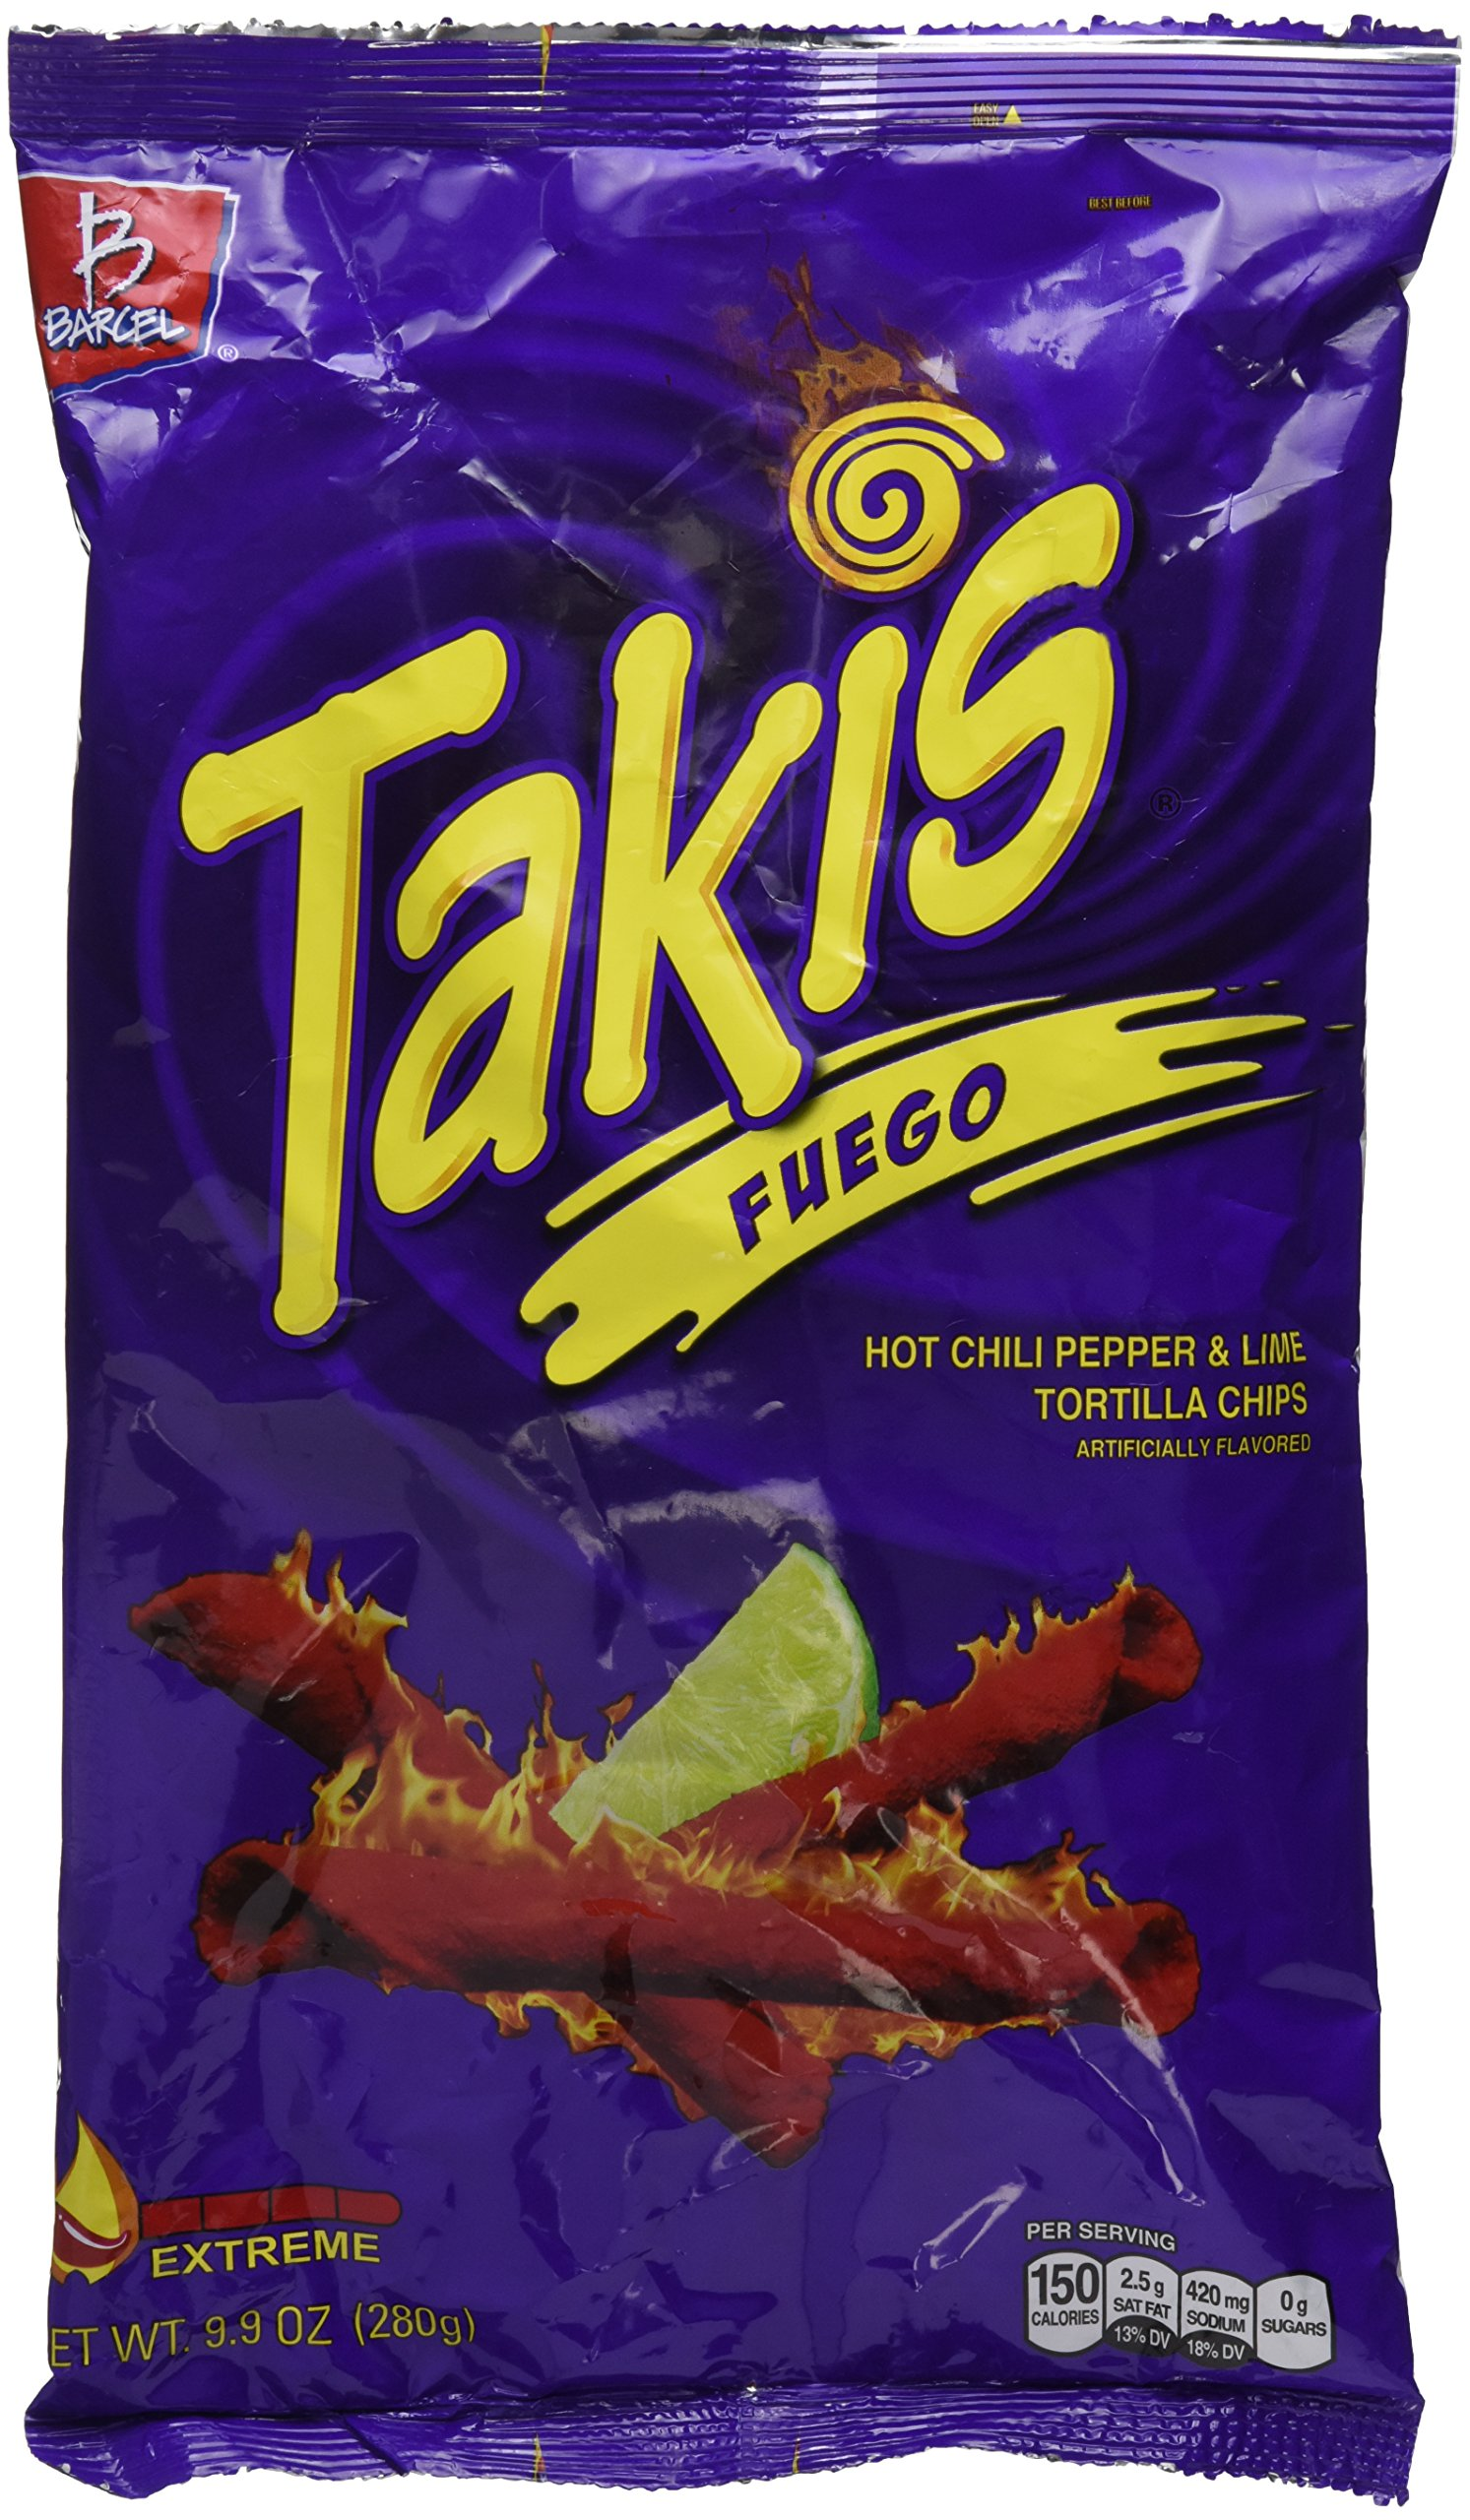 Galleon Bracel Takis Fuego Hot Chili Pepper Amp Lime